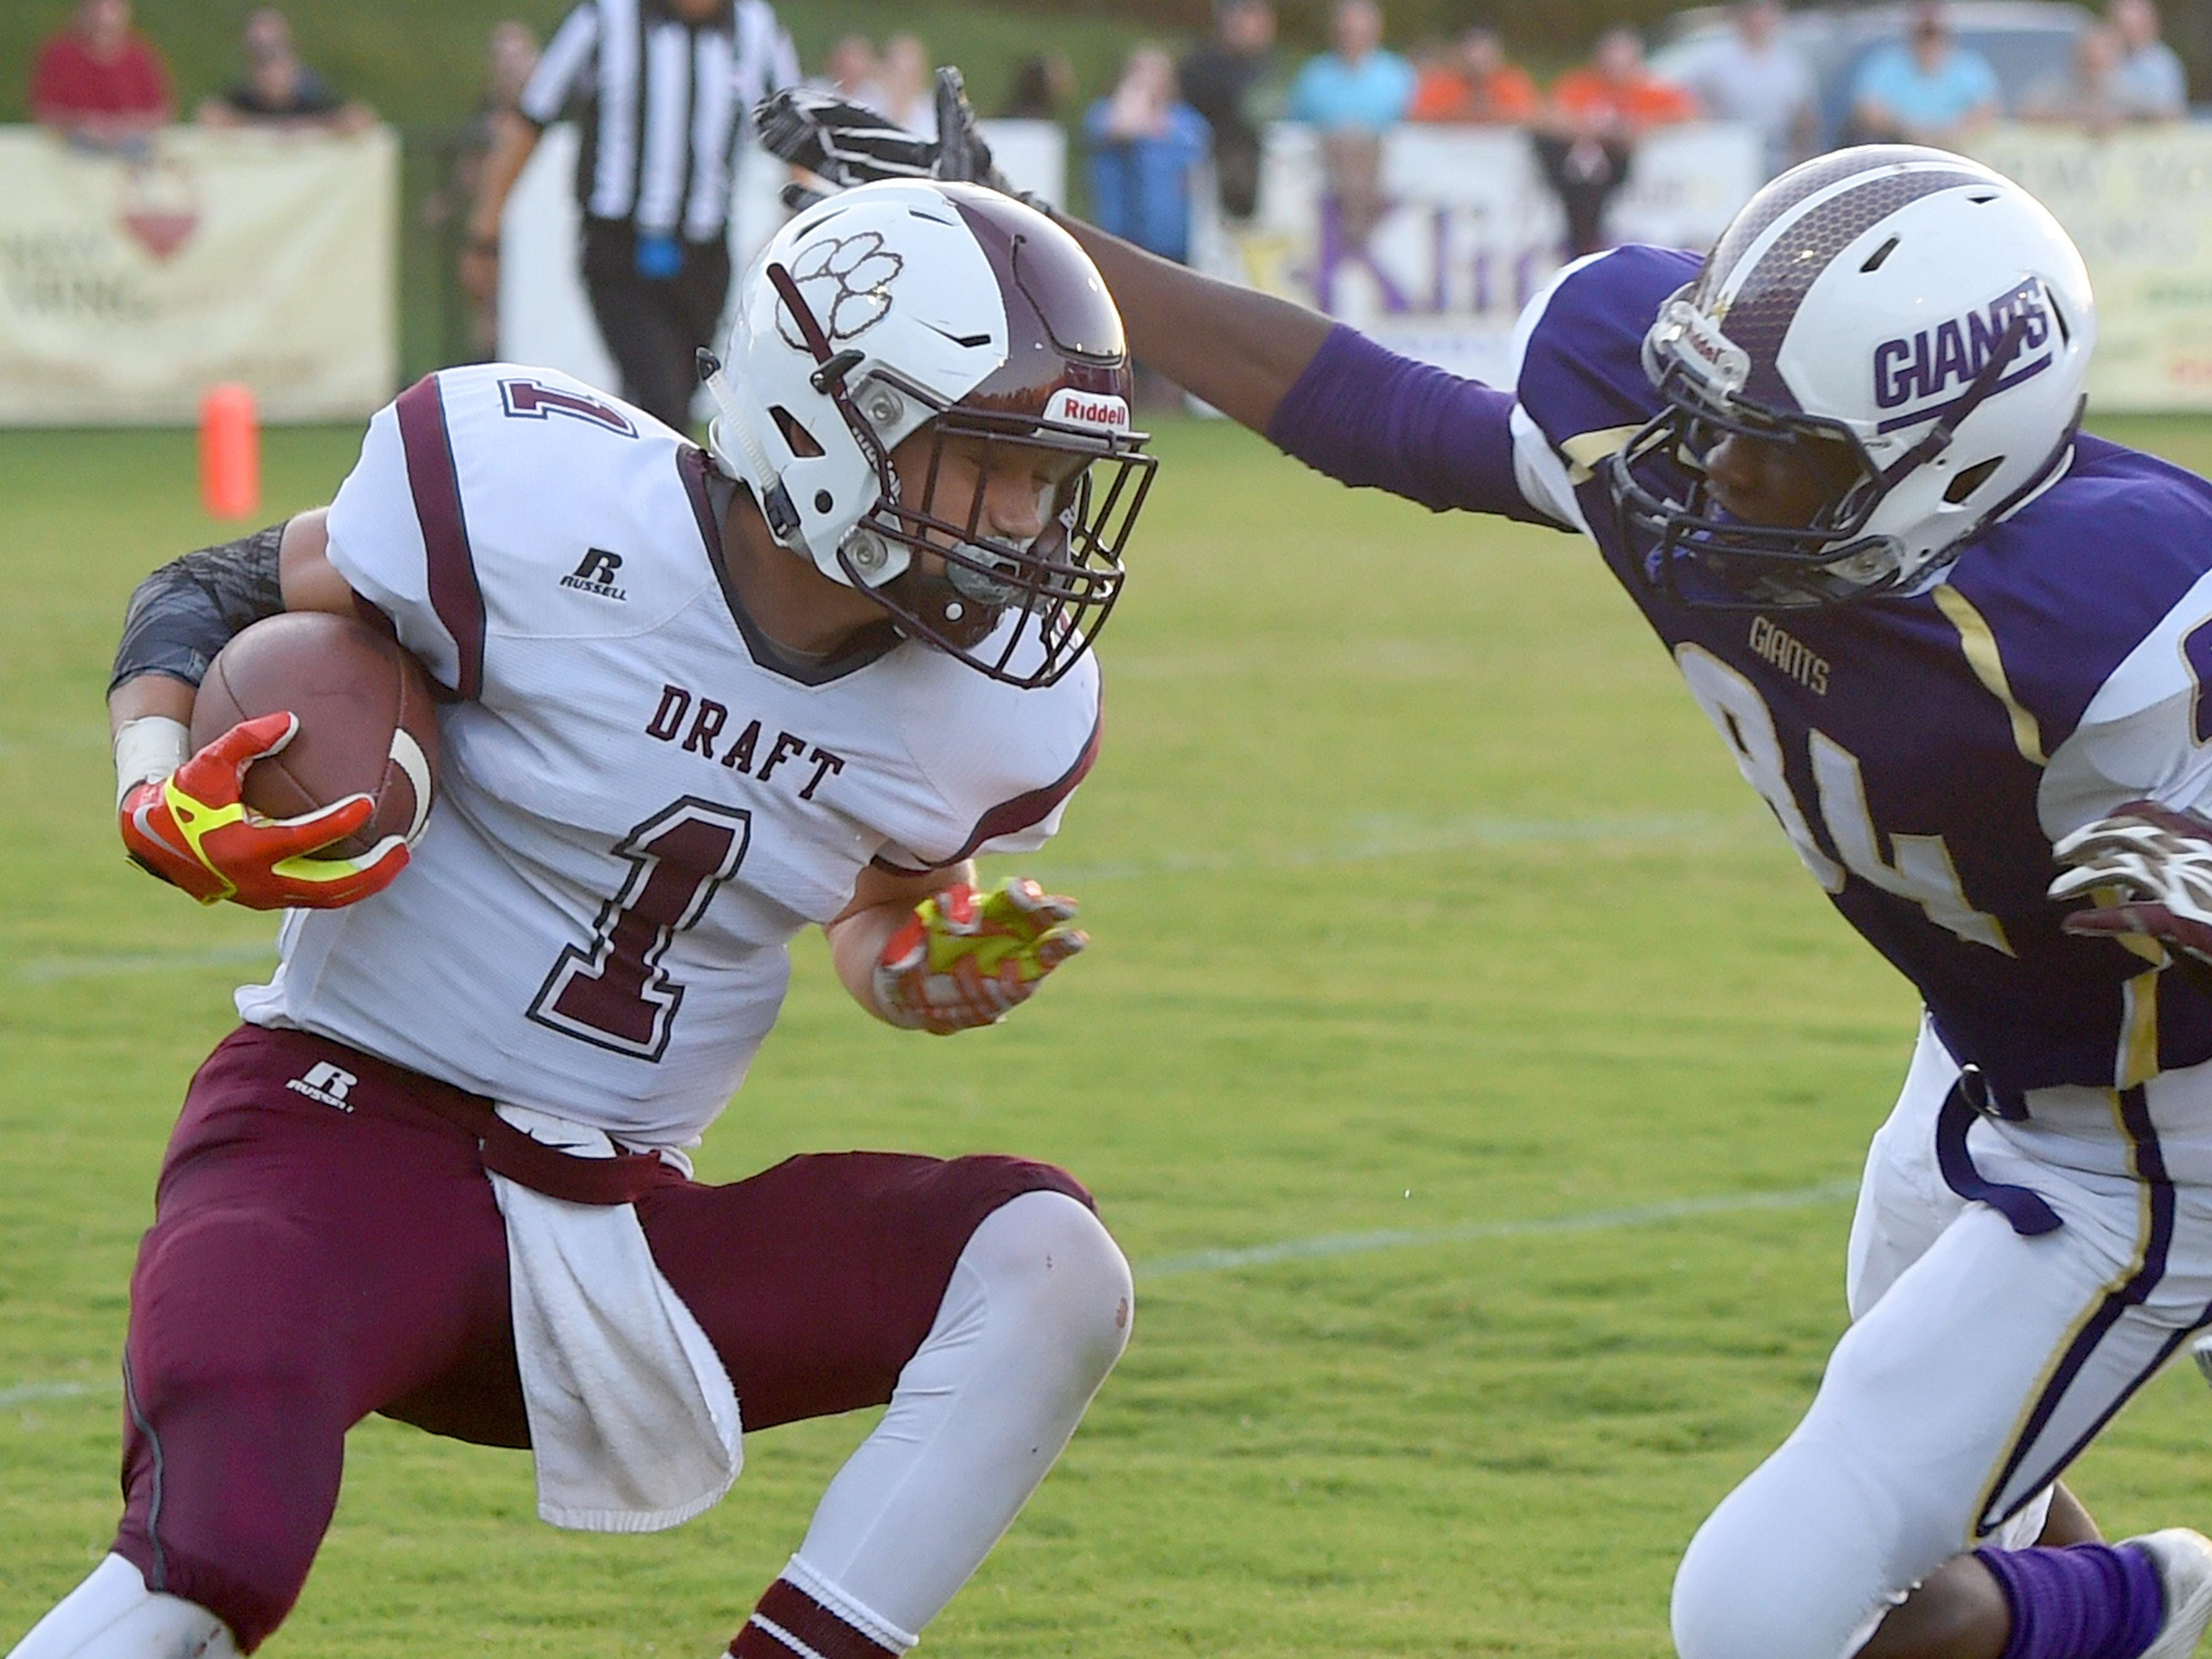 Stuarts Draft's Carson Peck has the ball as Waynesboro's Daviante Weems goes for a tackle during their game Friday.